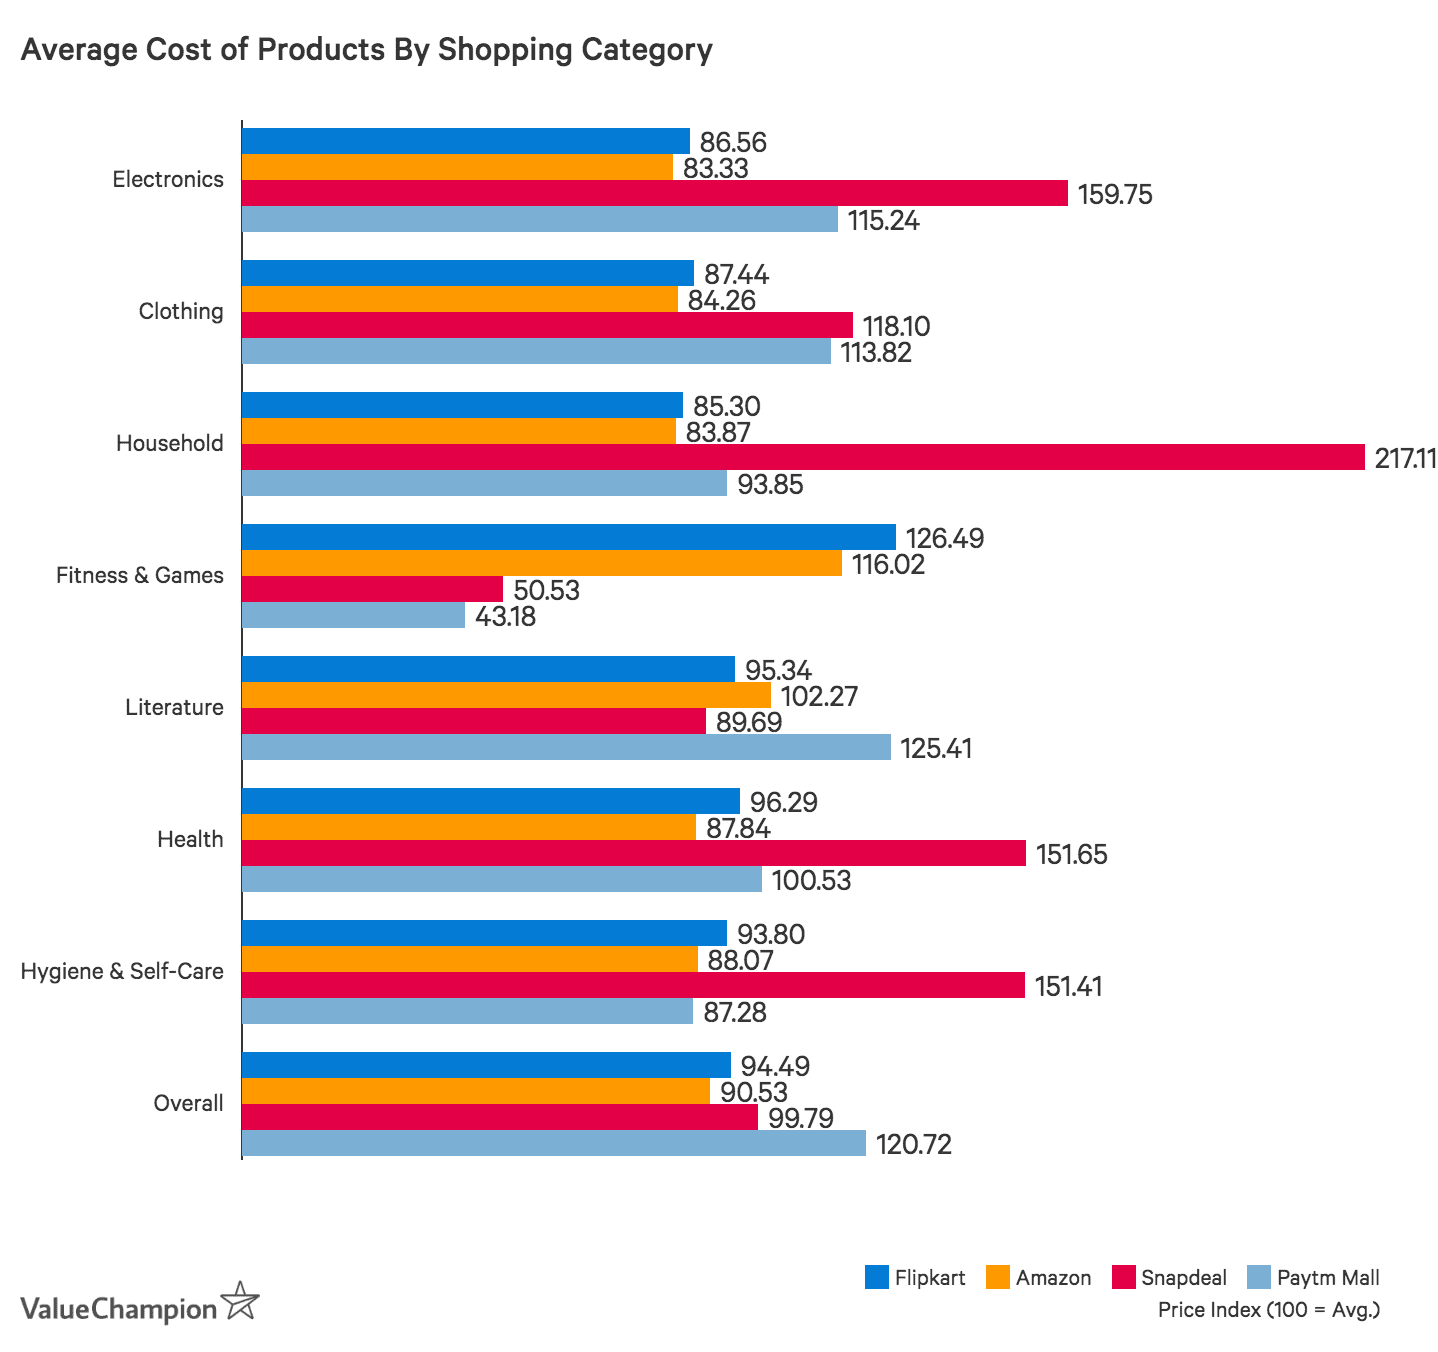 Average Cost of Products By Shopping Category